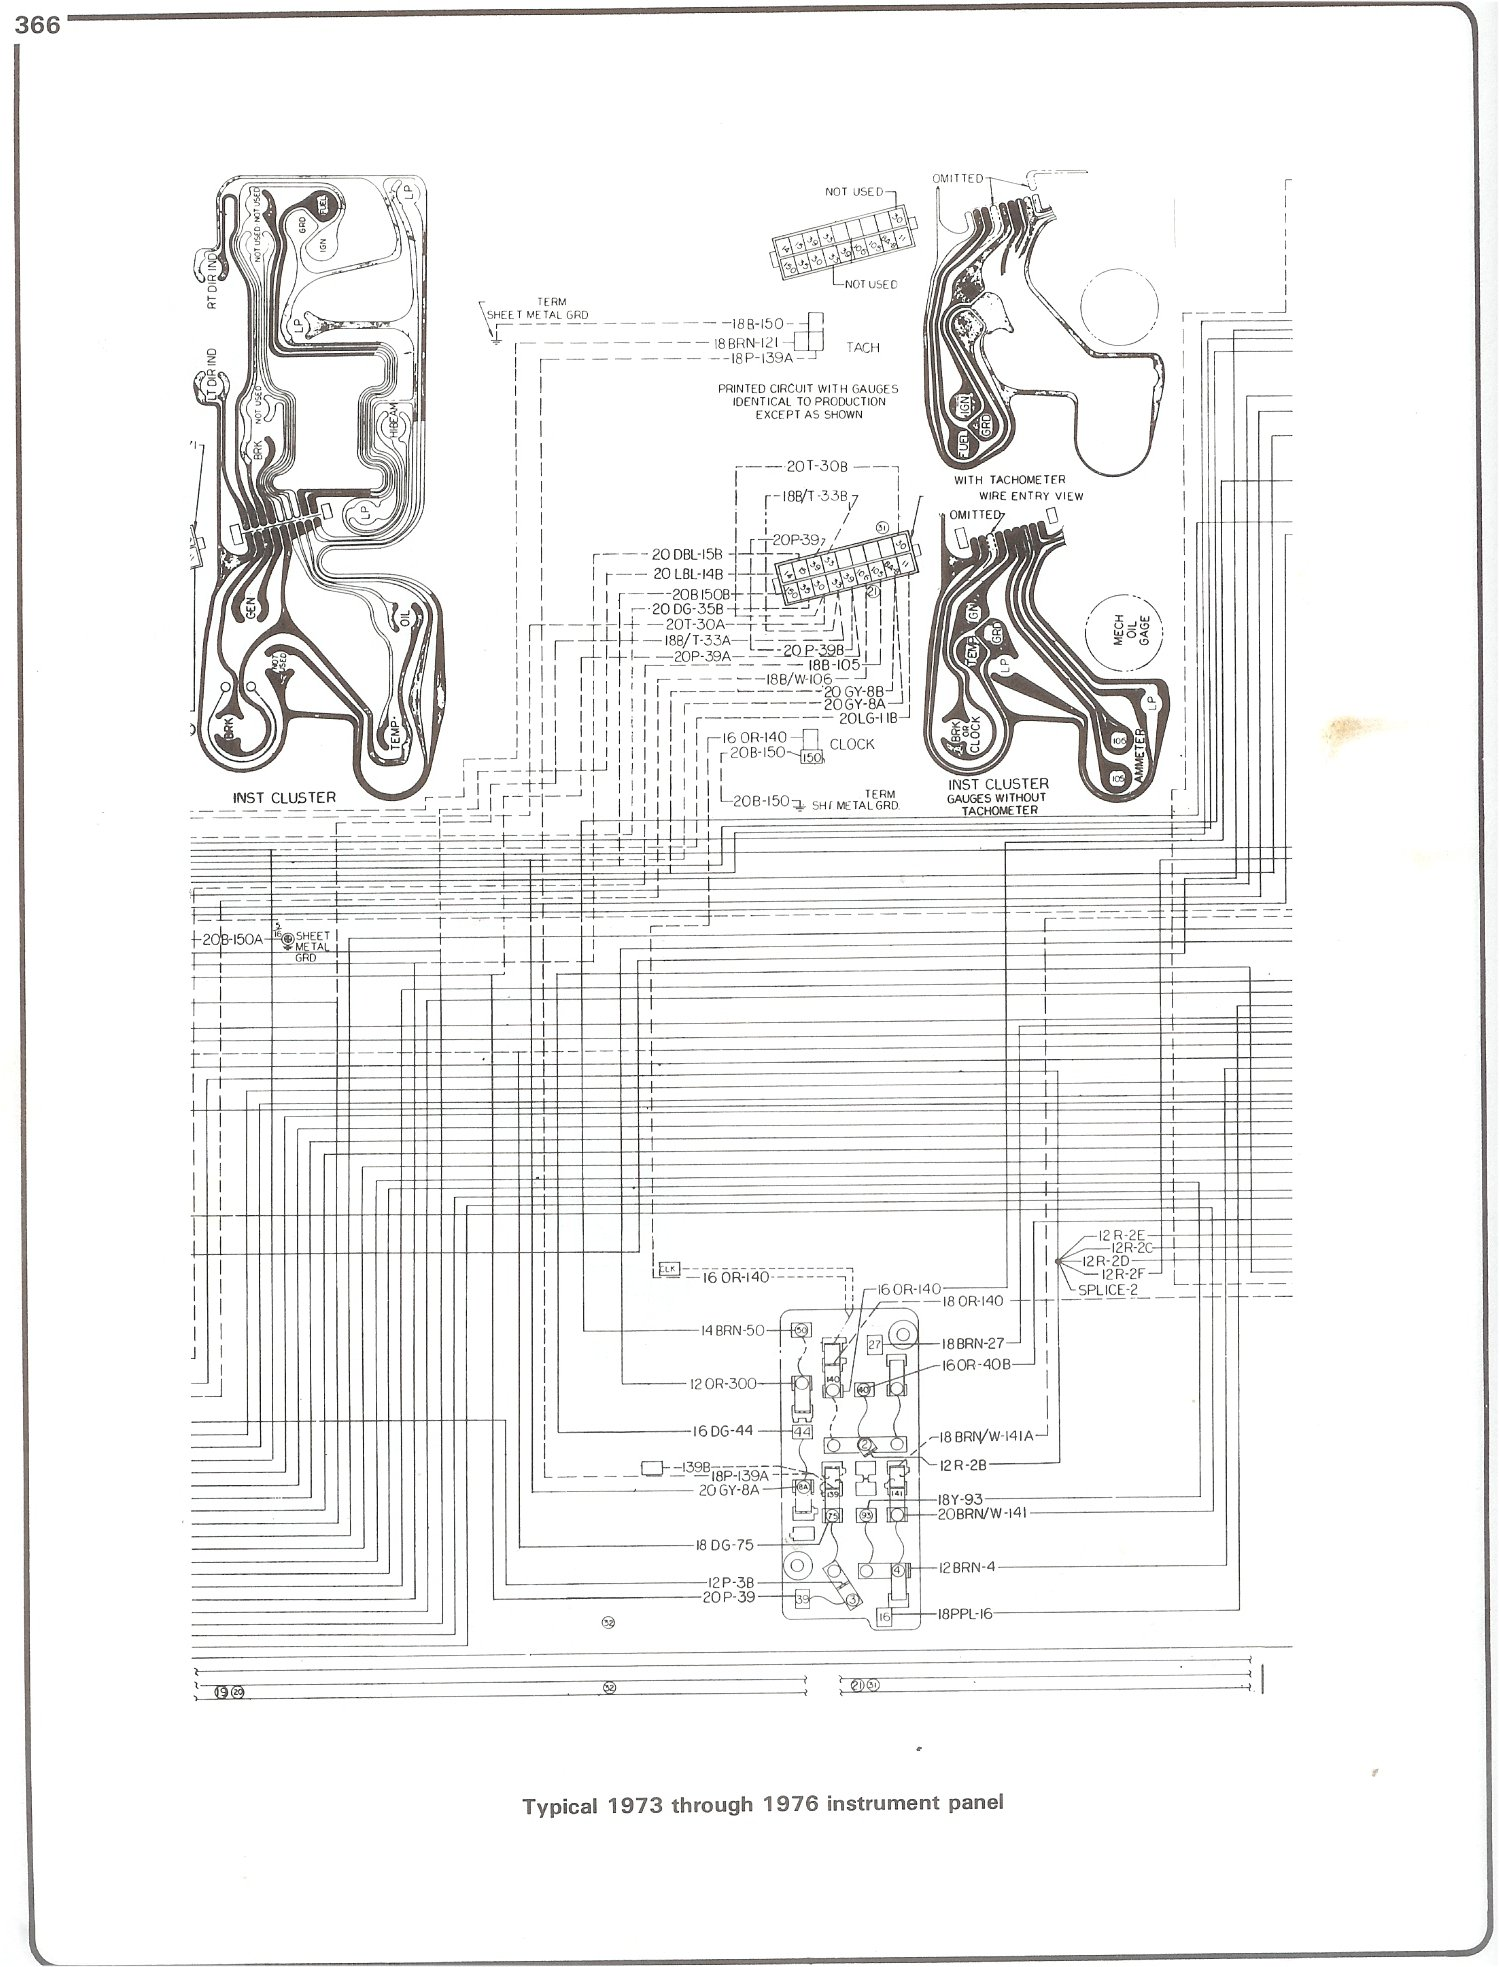 Complete 73-87 Wiring Diagrams on gmc trailer wiring, gmc truck schematics, 2005 gmc power distribution schematics, gmc truck fuse diagrams, gmc headlights, gmc engine, gmc schematic diagrams, chevrolet truck schematics, gmc yukon fuel pump diagram, gmc wiring color codes, gmc drawings, 83 gmc pickup schematics, 2000 gmc jimmy fuel pump schematics, gmc truck wiring harness,